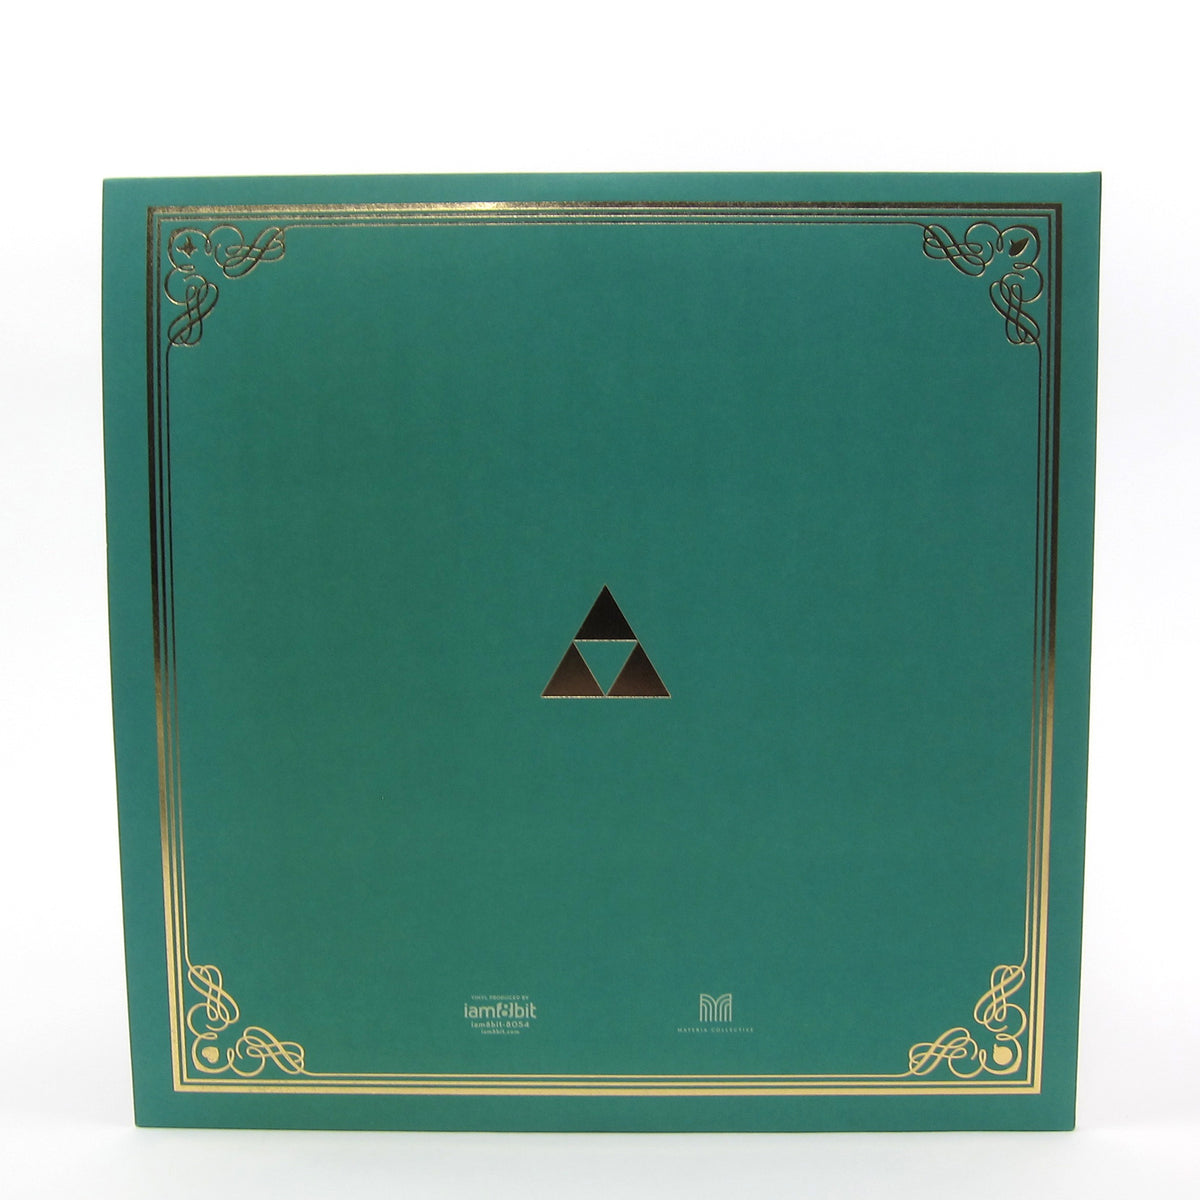 Slovak National Symphony Orchestra: Hero Of Time - Music From The Legend Of Zelda - Ocarina Of Time (180g, Colored Vinyl) Vinyl 2LP